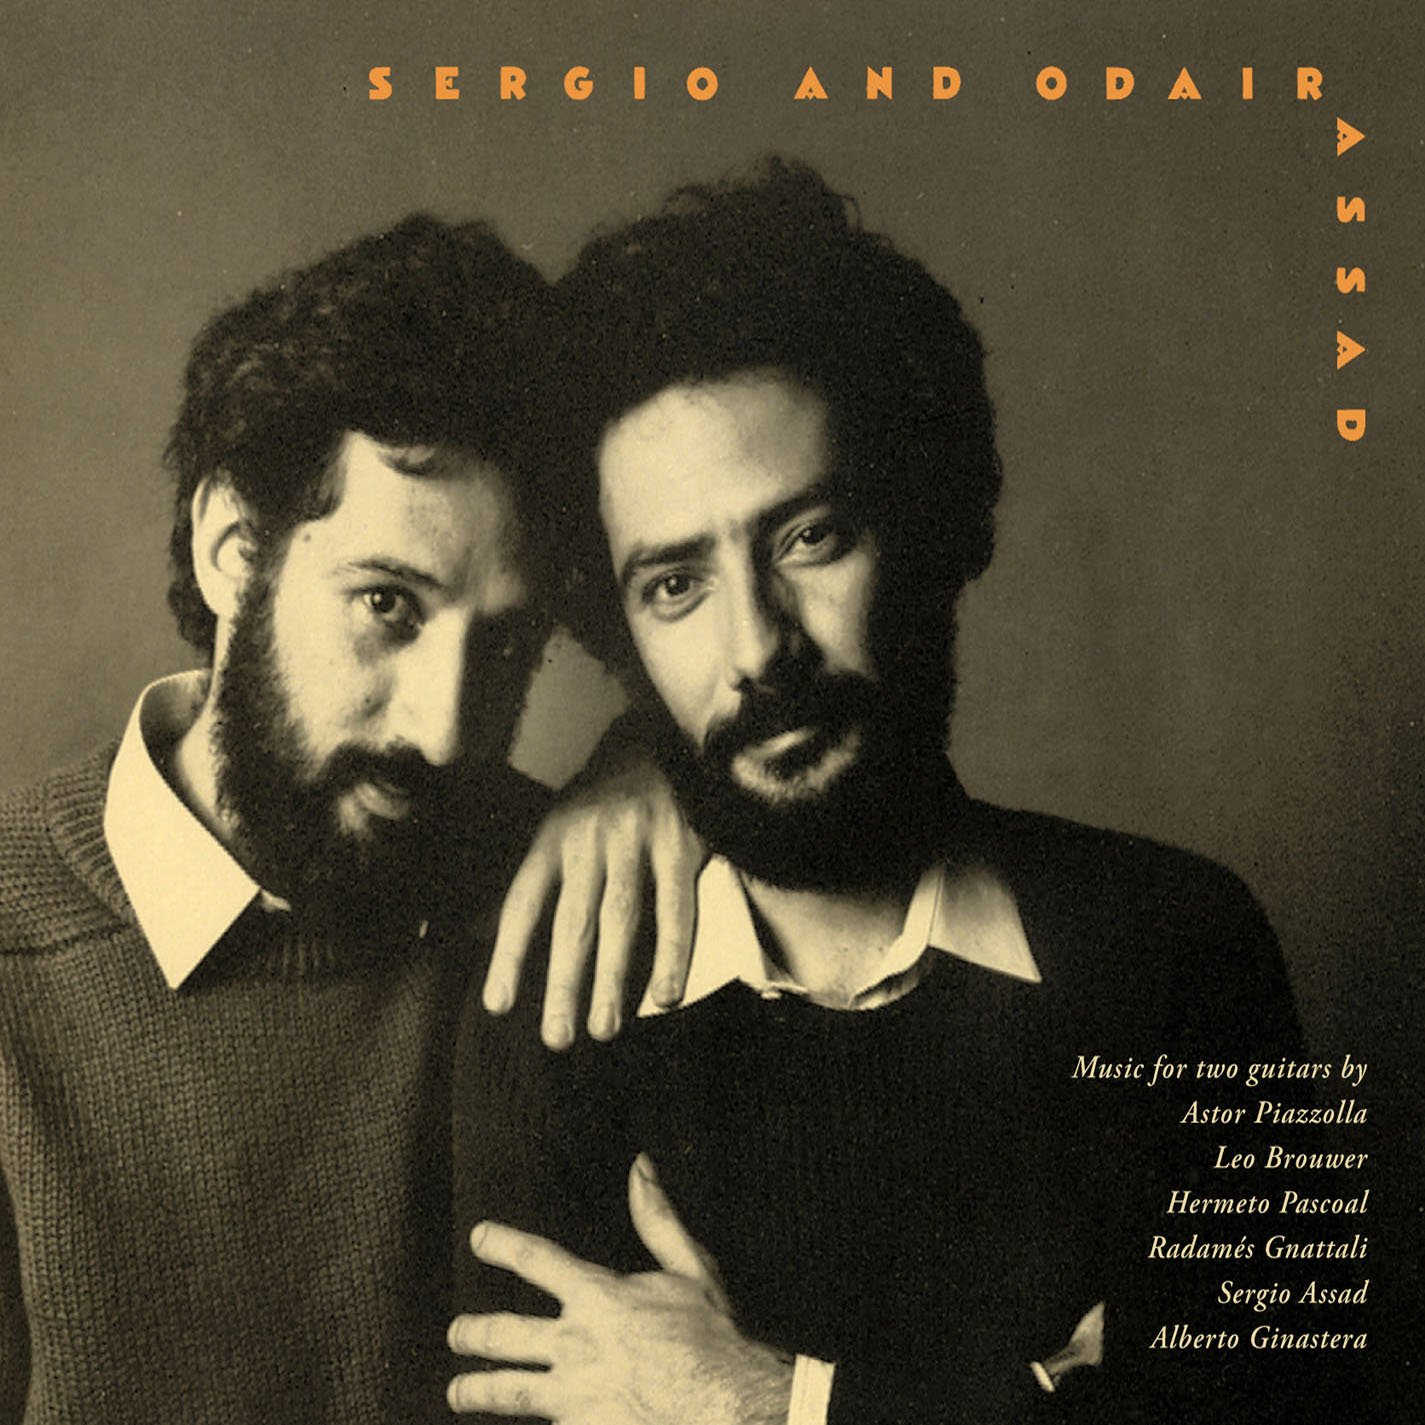 Latin American Music for Two Guitars